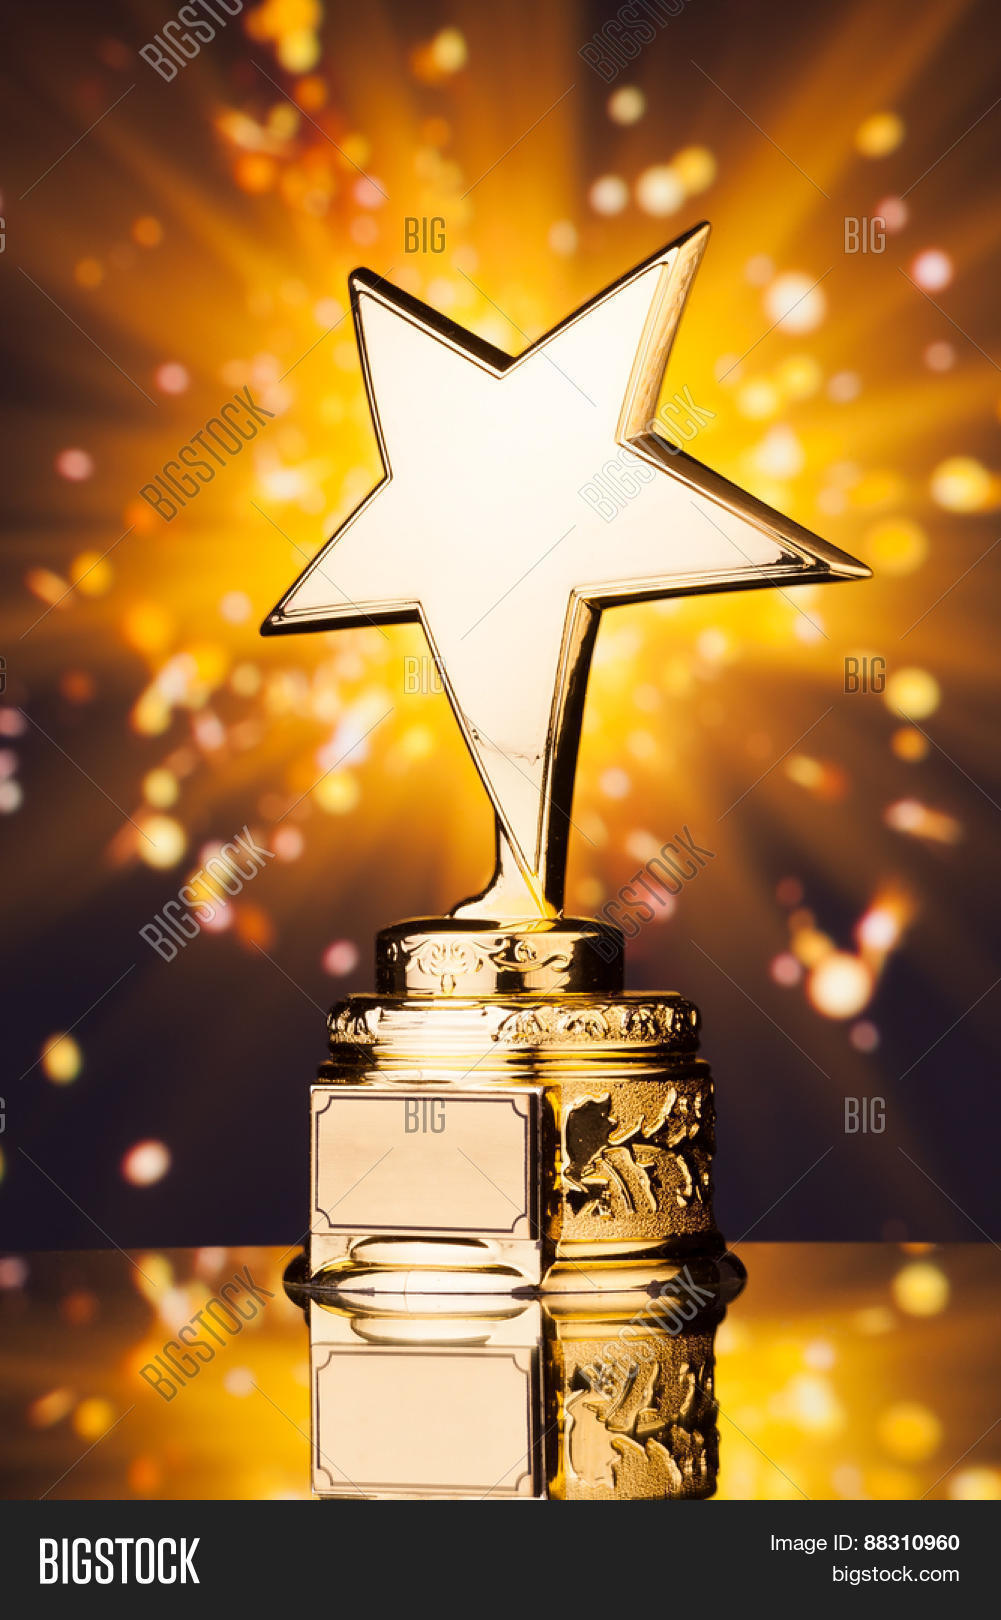 Gold Star Trophy Against Shiny Image Photo